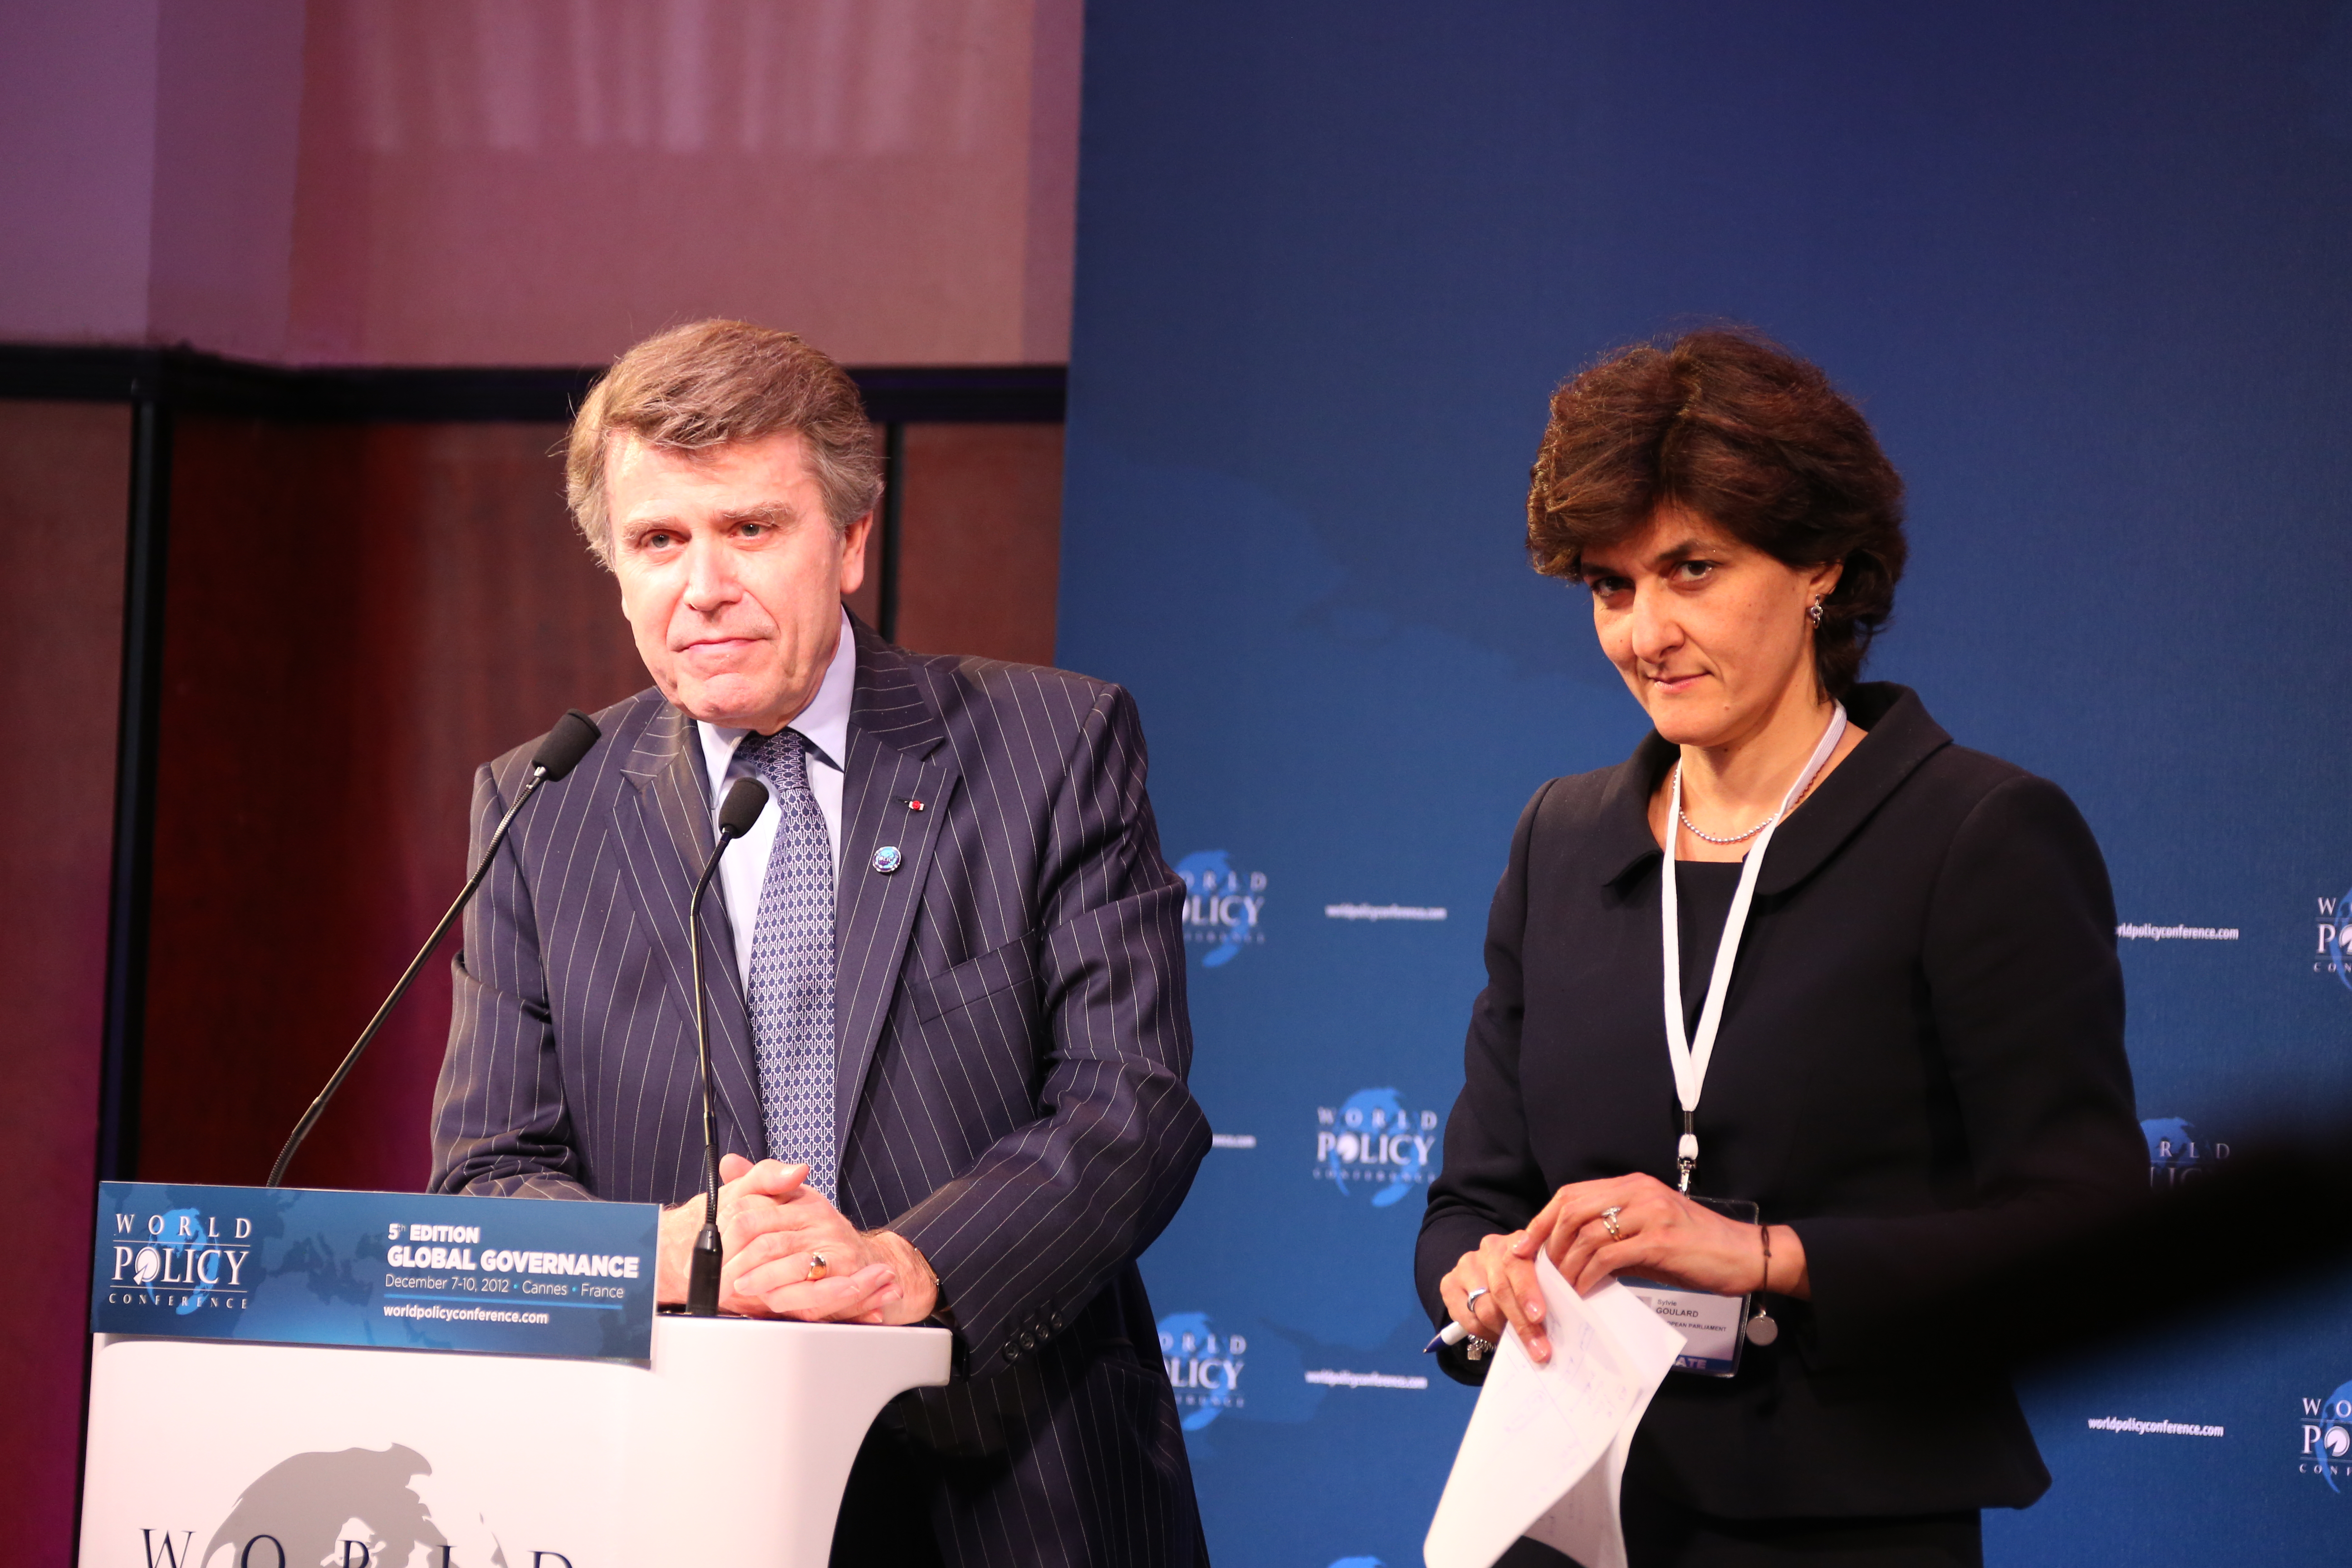 World Policy Conference WPC 2012, Thierry de Montbrial, Sylvie Goulard